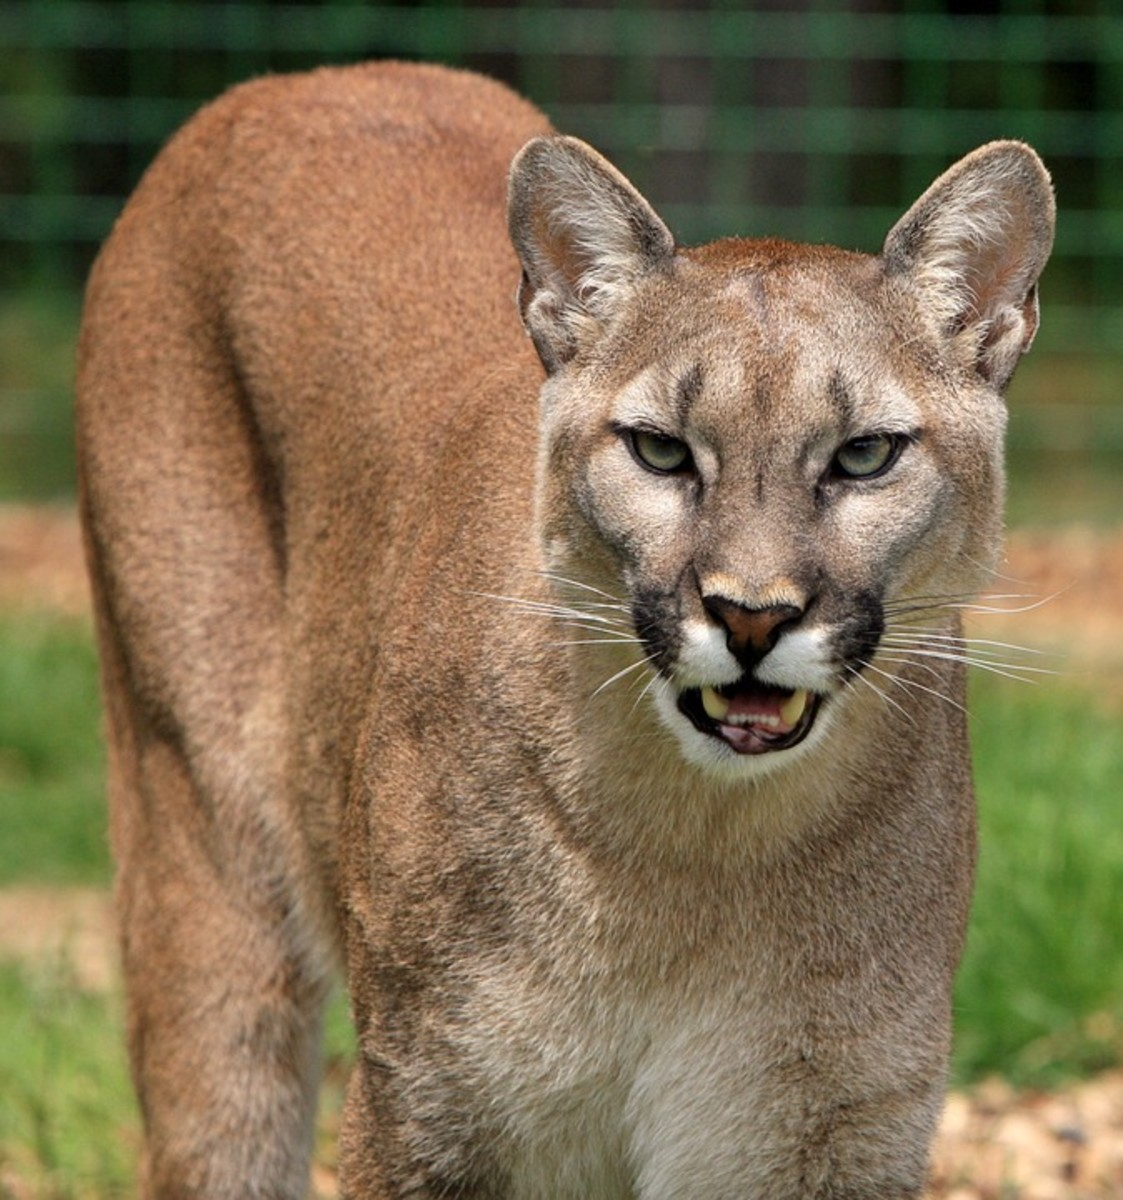 Cougar or Mountain lion possibly readying for an attack.